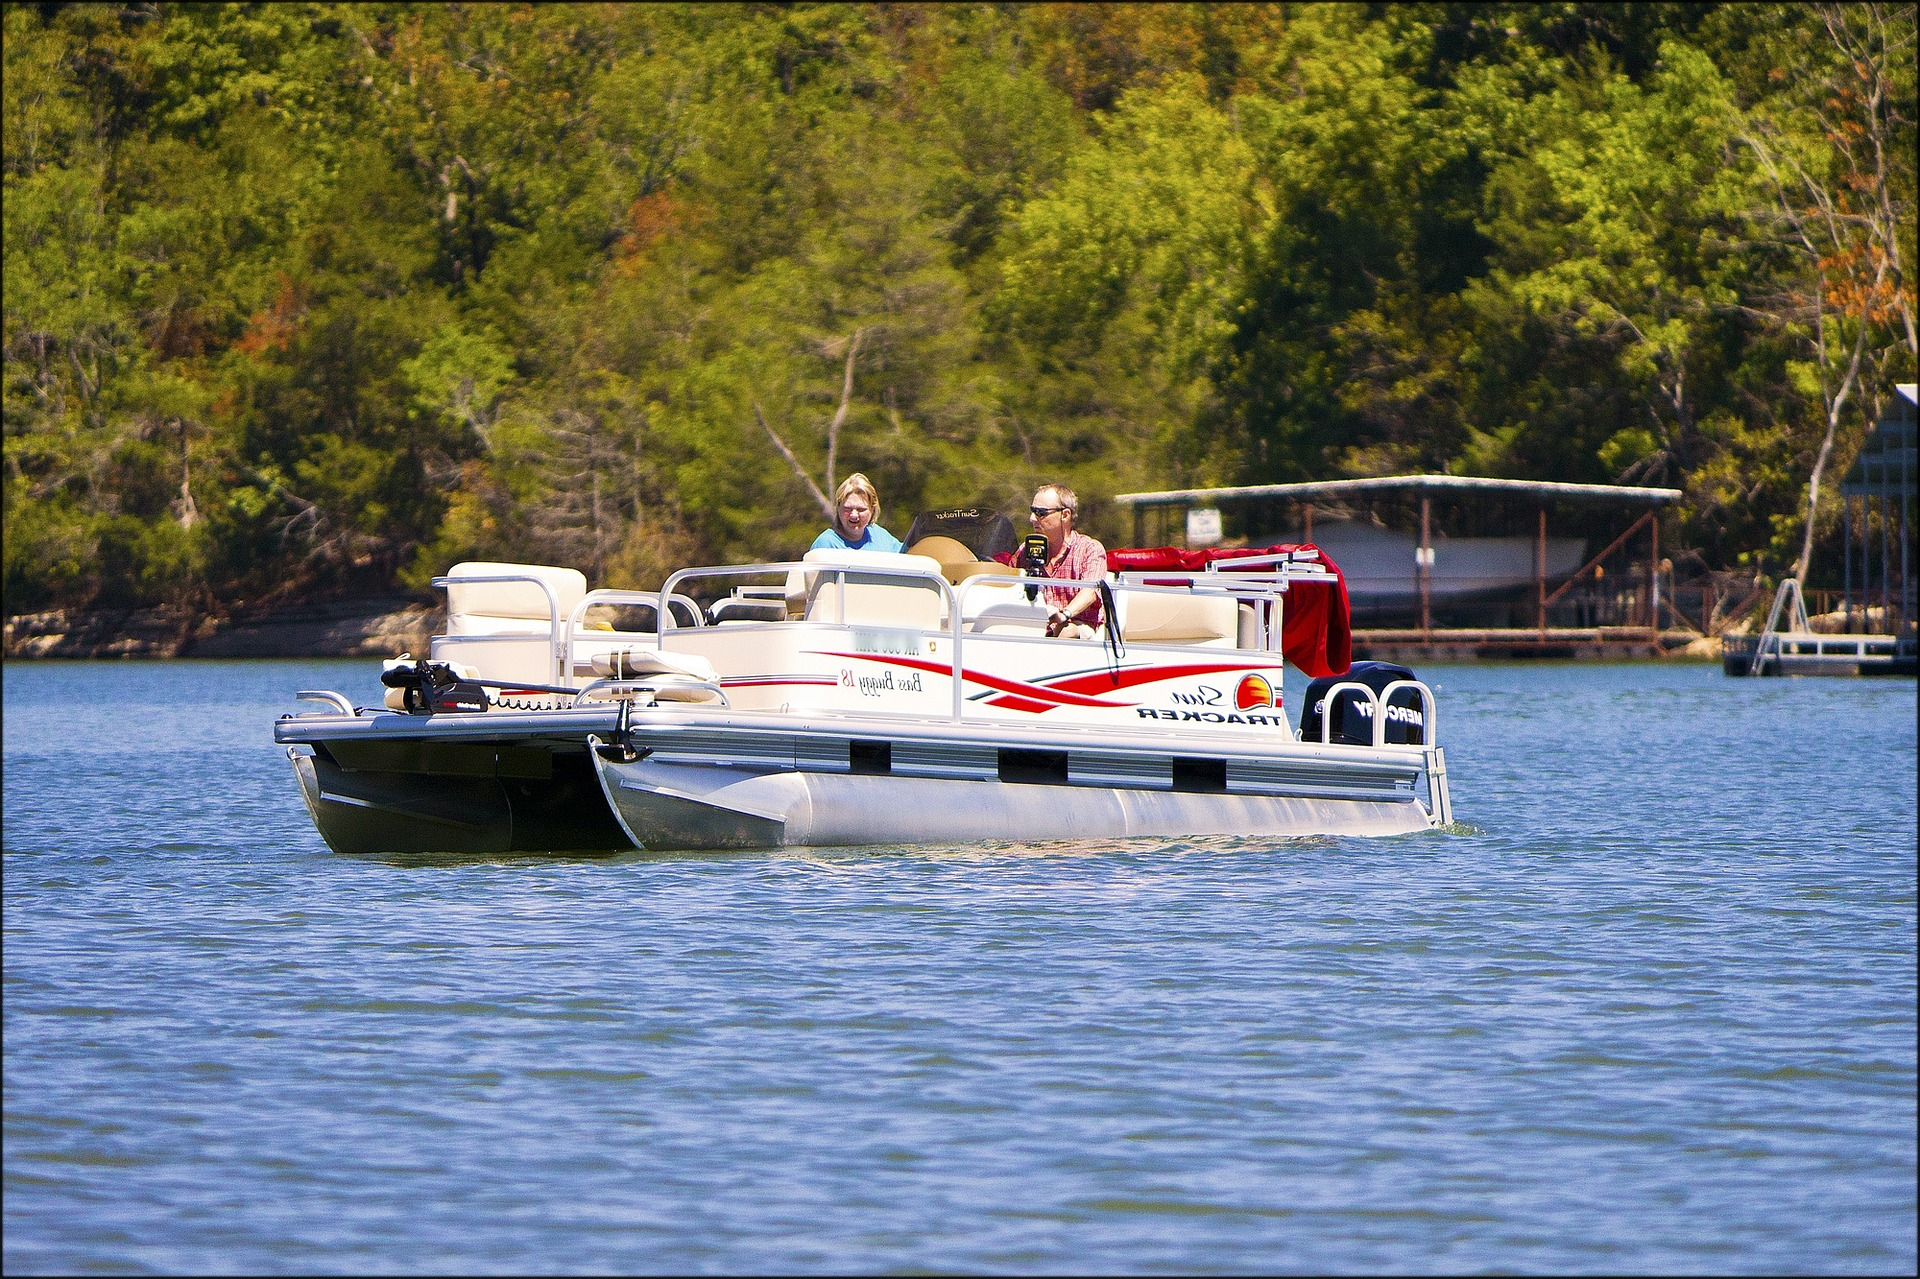 Myrtle Beach Travel Park Also Offers Pontoon Boat Rentals.